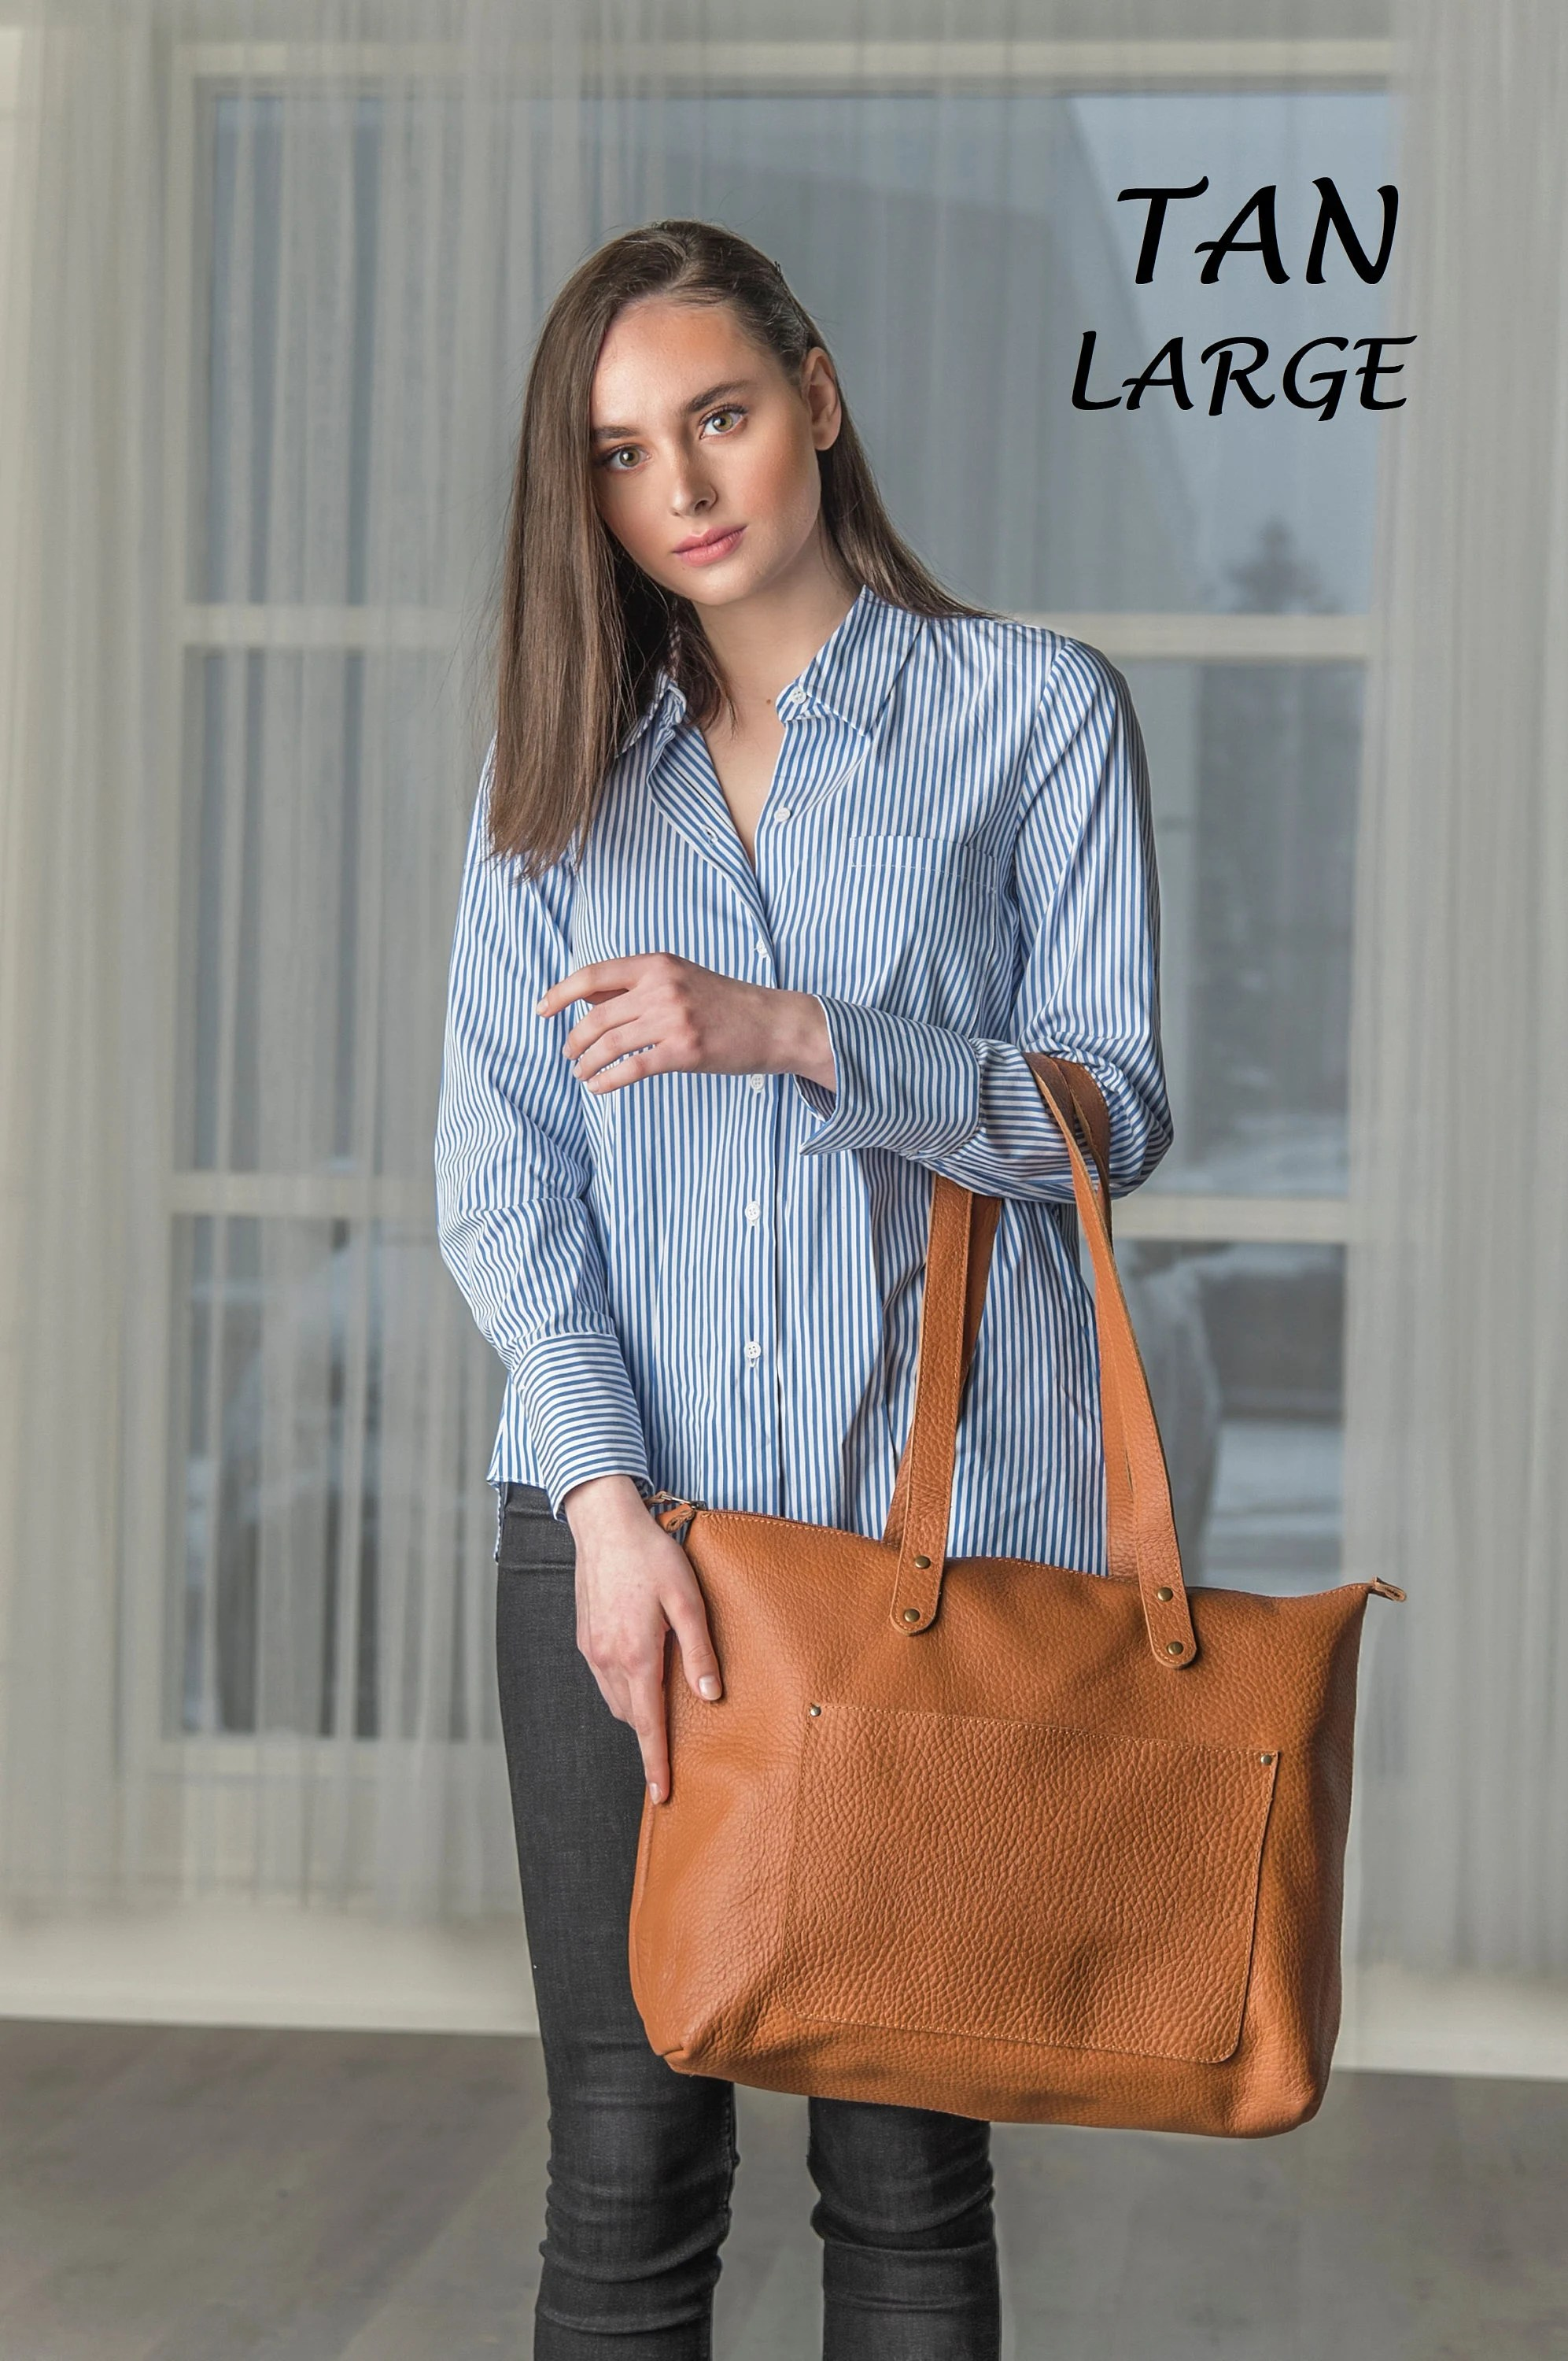 Personalized Leather Tote Bag Women's Leather Handbag image 7